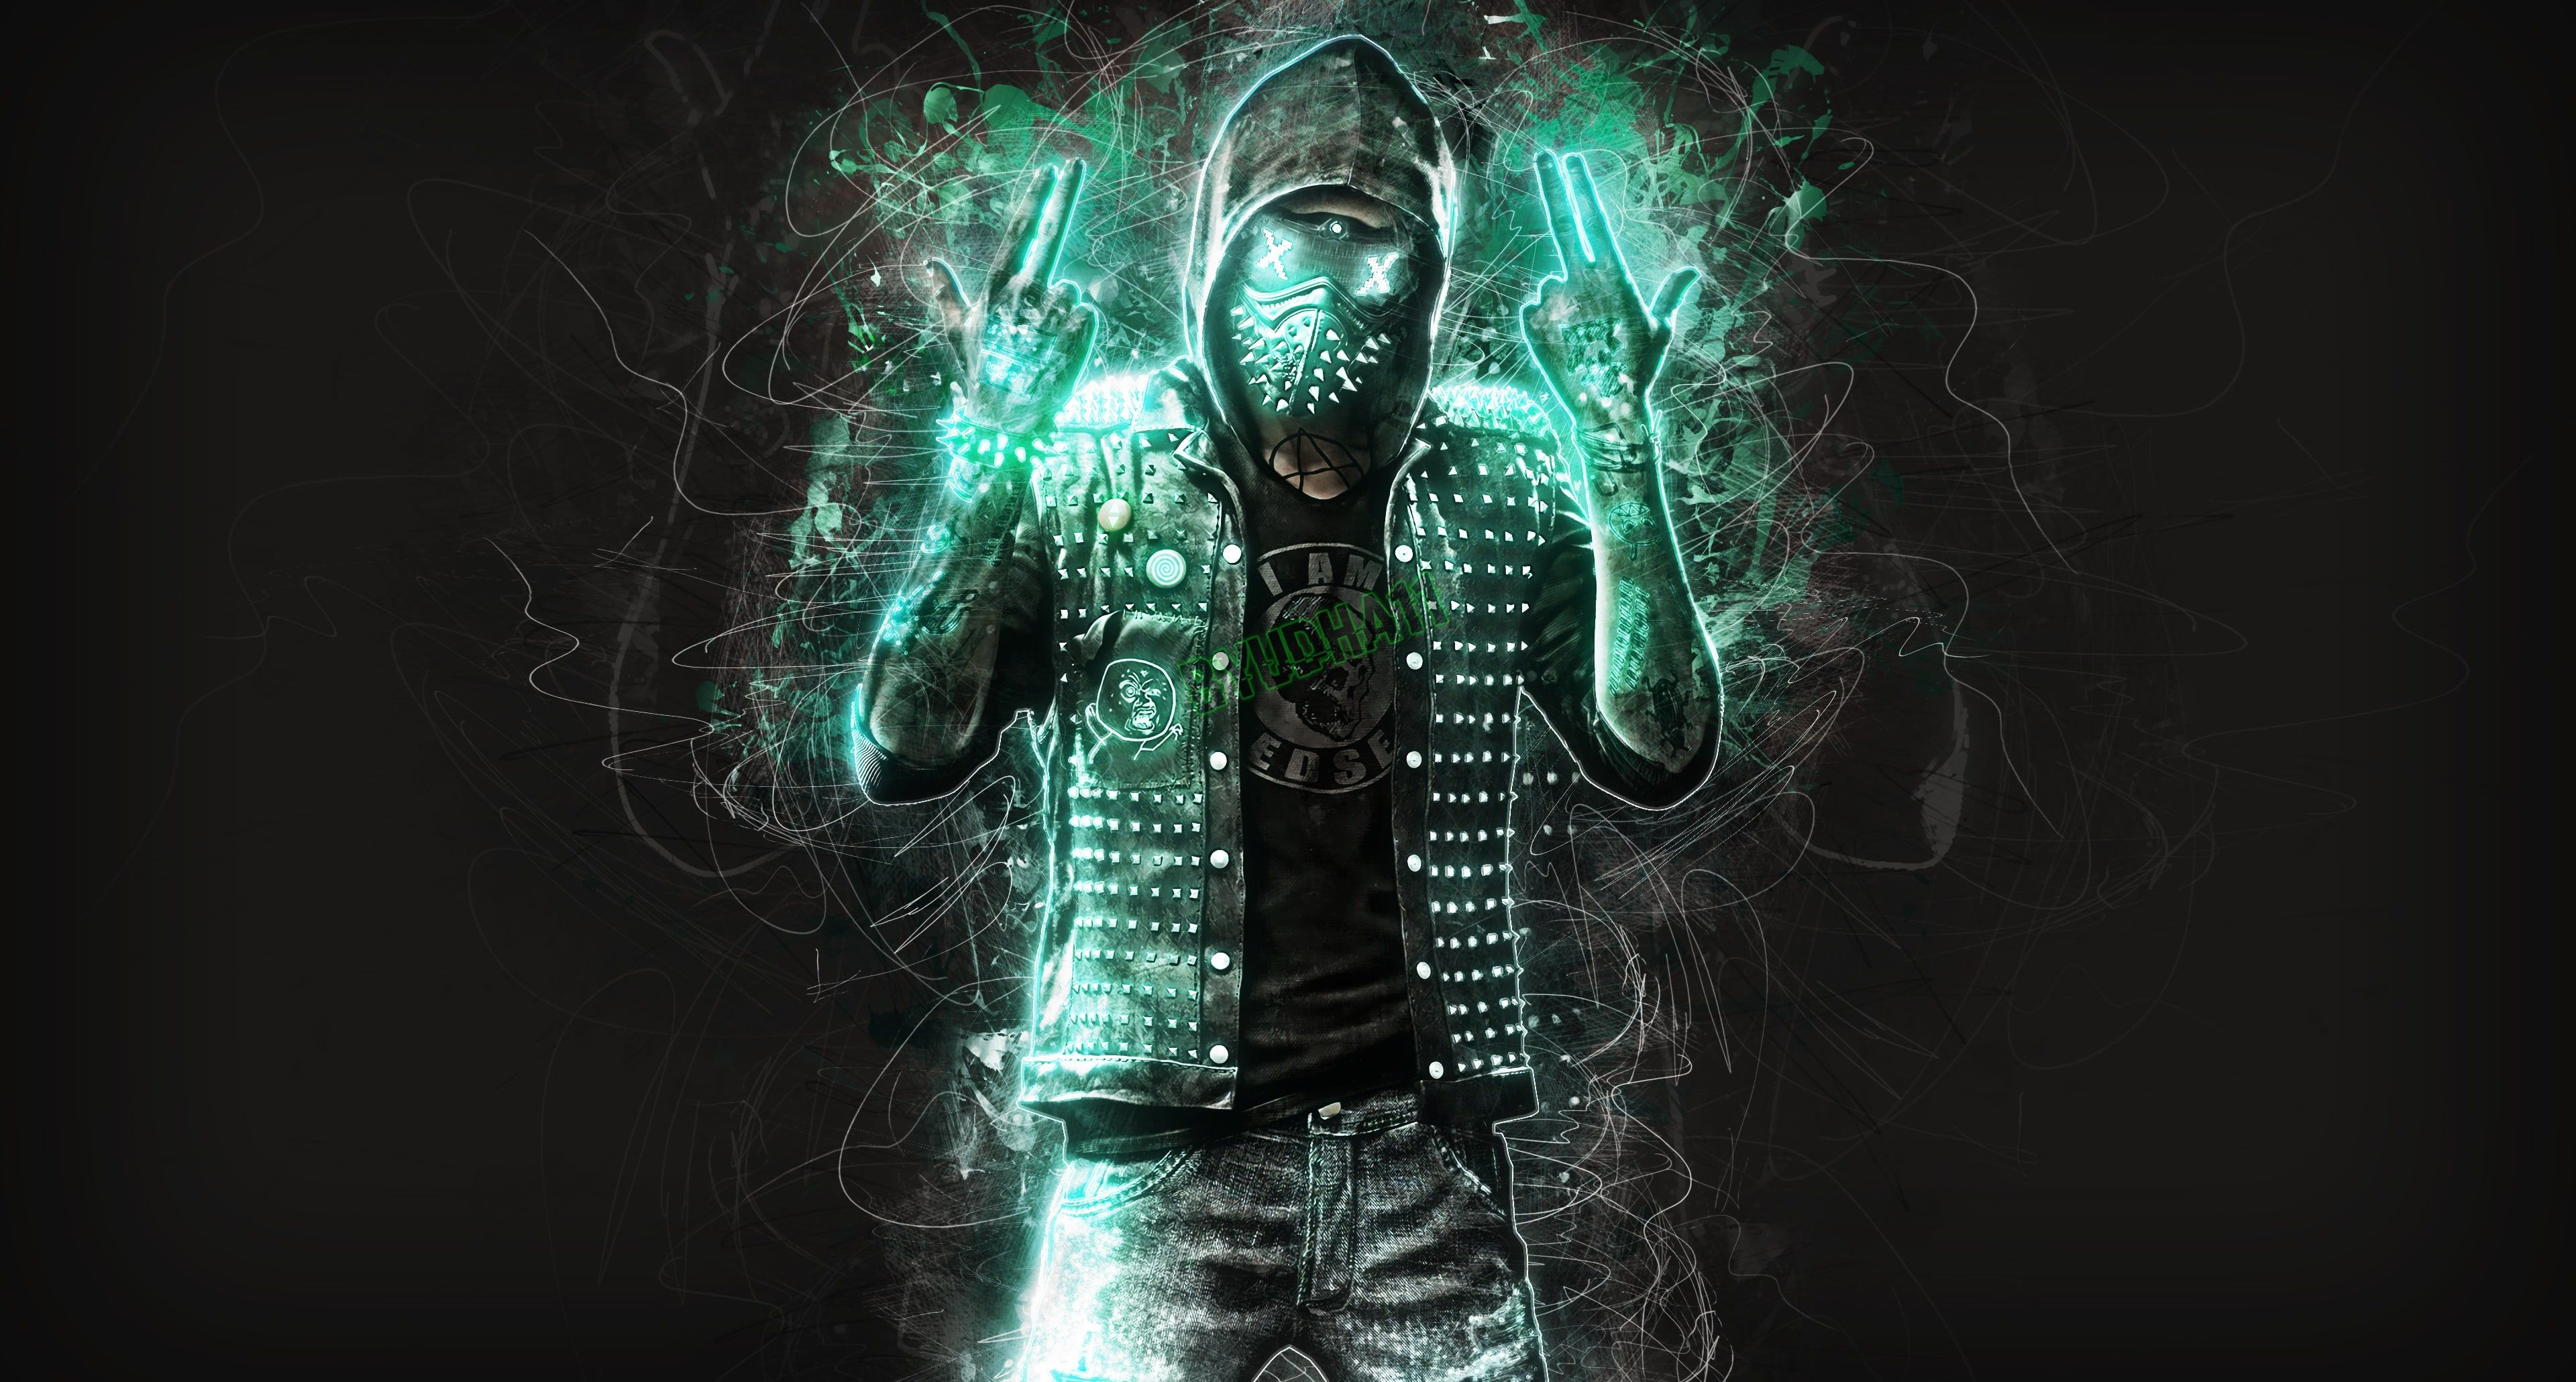 Wrench Watch Dogs 2 Fan Art Wrench Watch Dogs 2 Fan Art Is An Hd Desktop Wallpaper Posted In Our Free Image Collection Of Gaming Wallpapers You Can Download